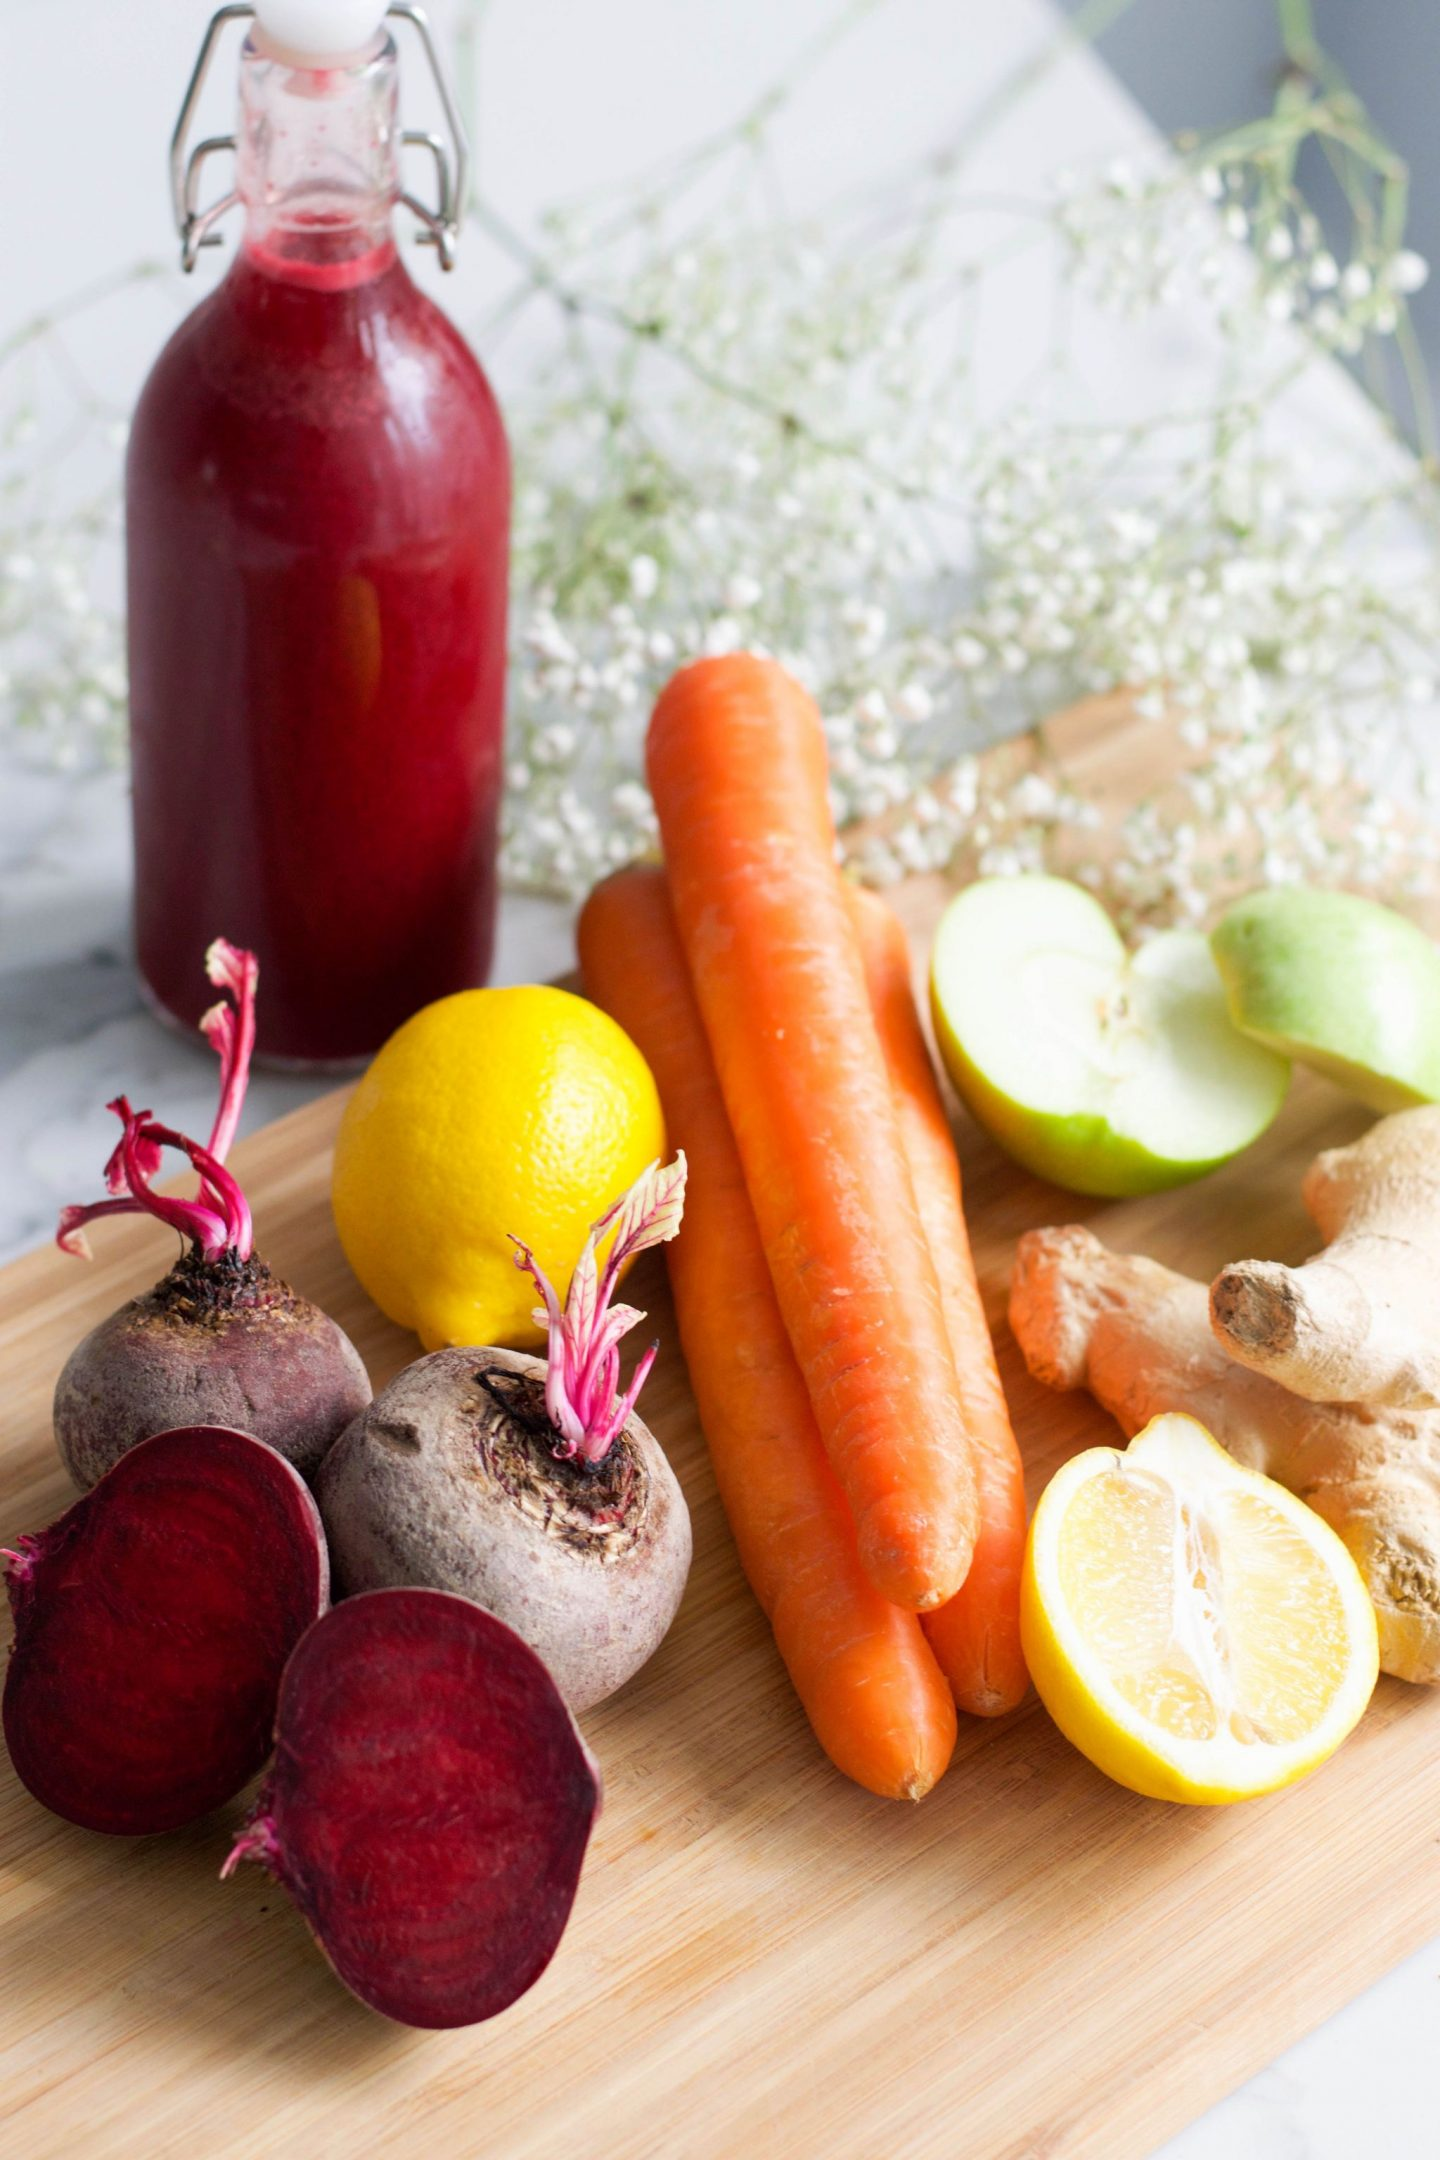 Wellness Wednesday: How to Make Your Own Vitamin Packed Juices at Home